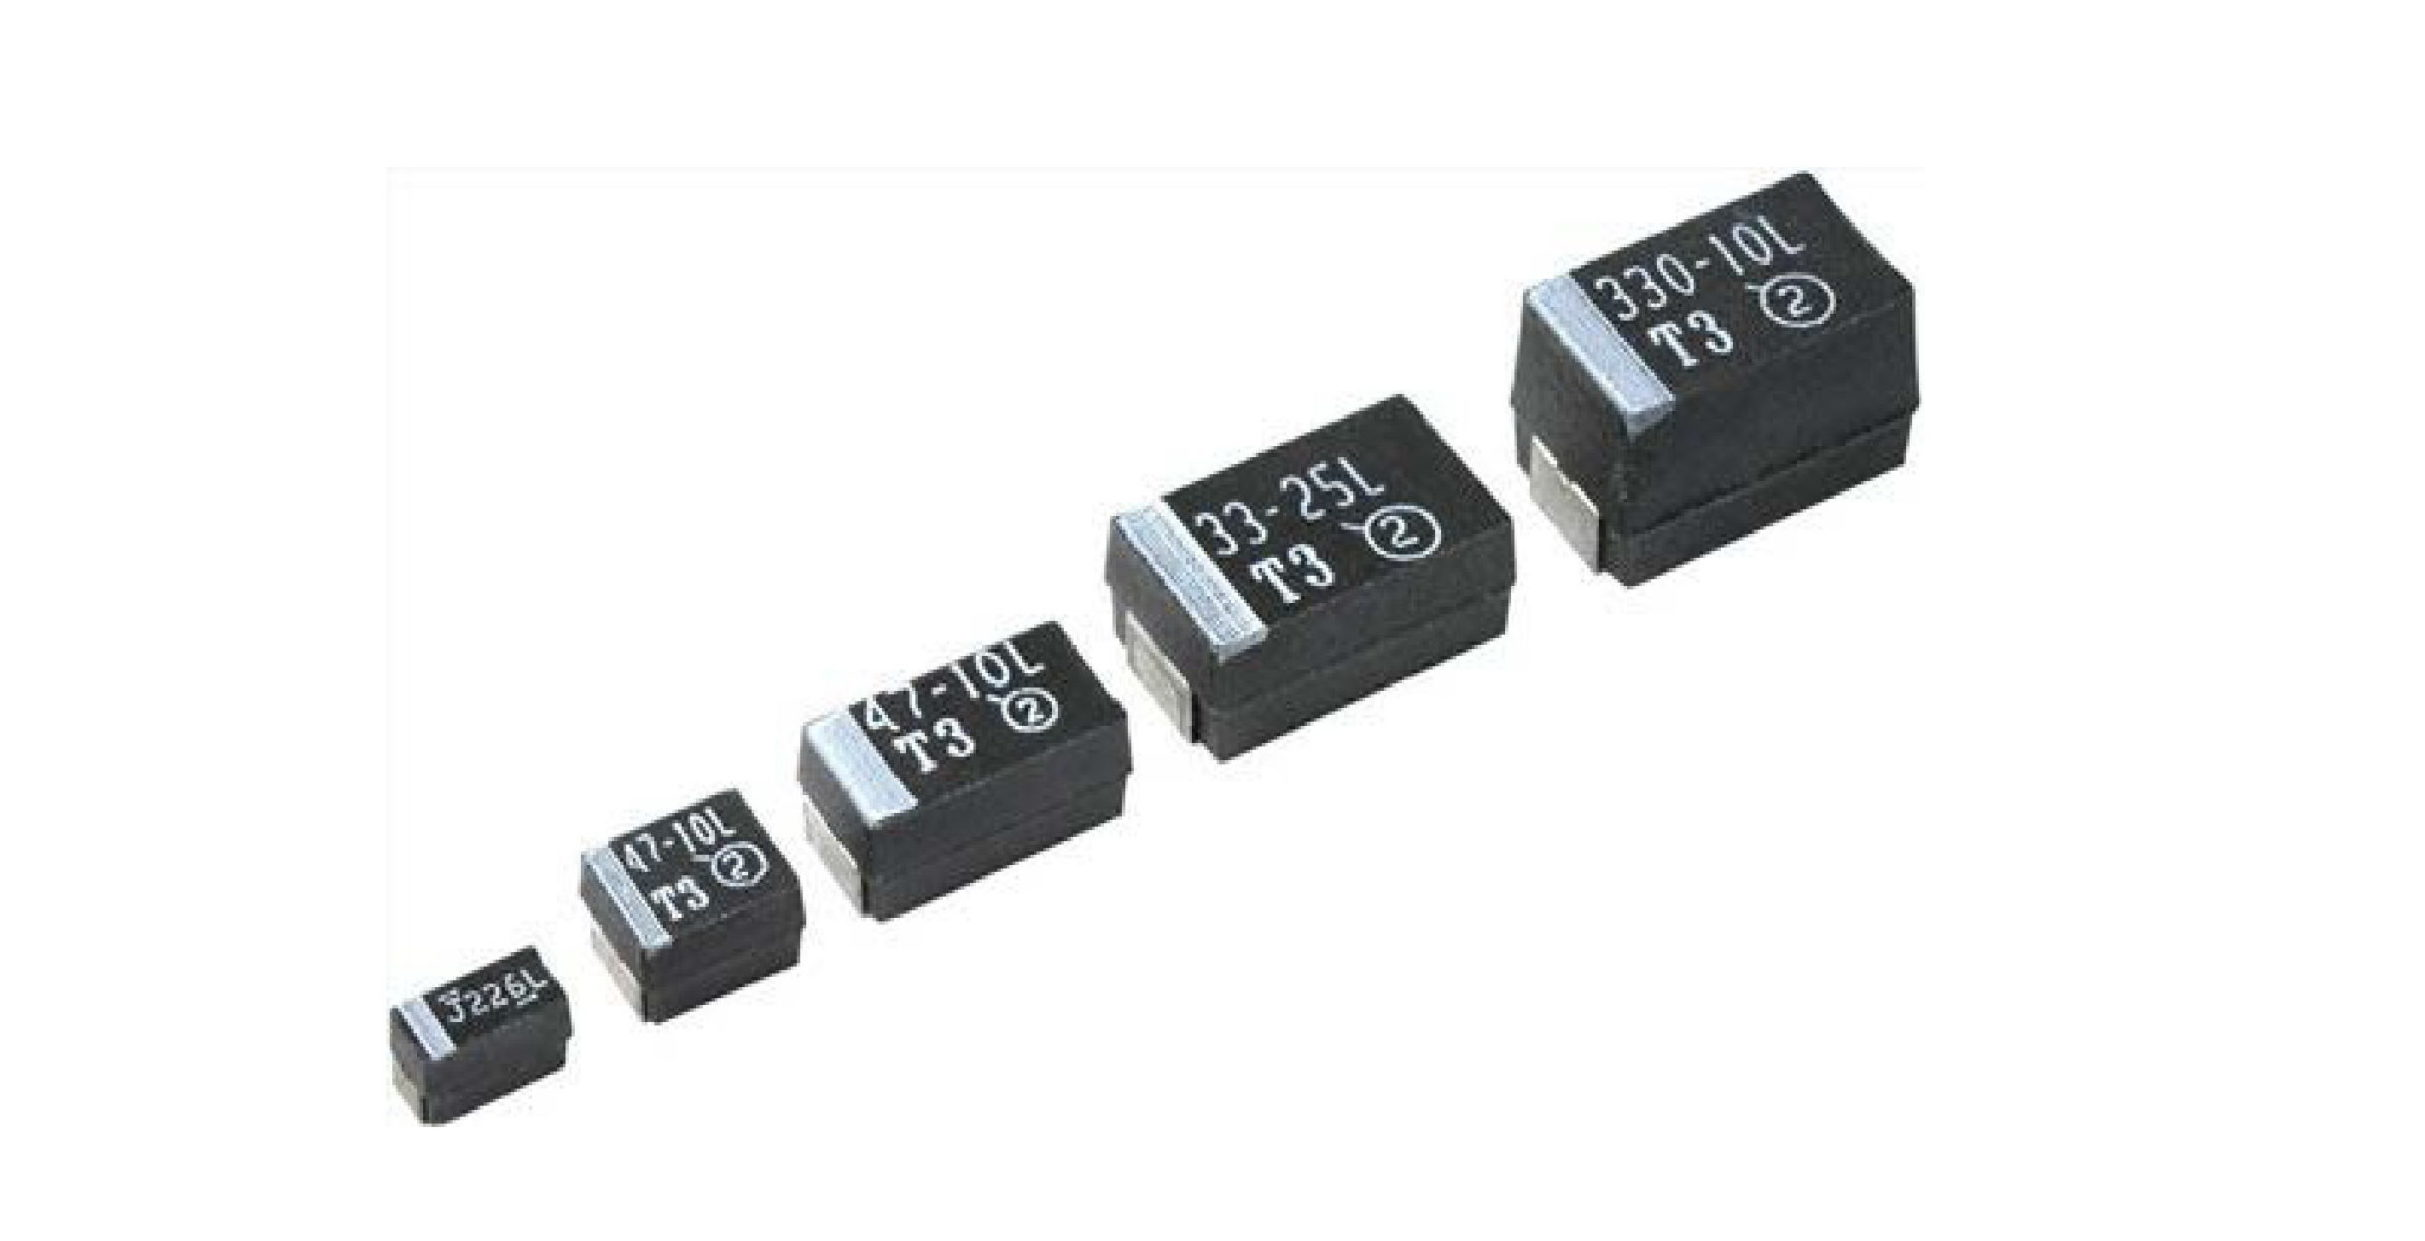 Low ESR tantalum capacitors make a difference in circuit designs